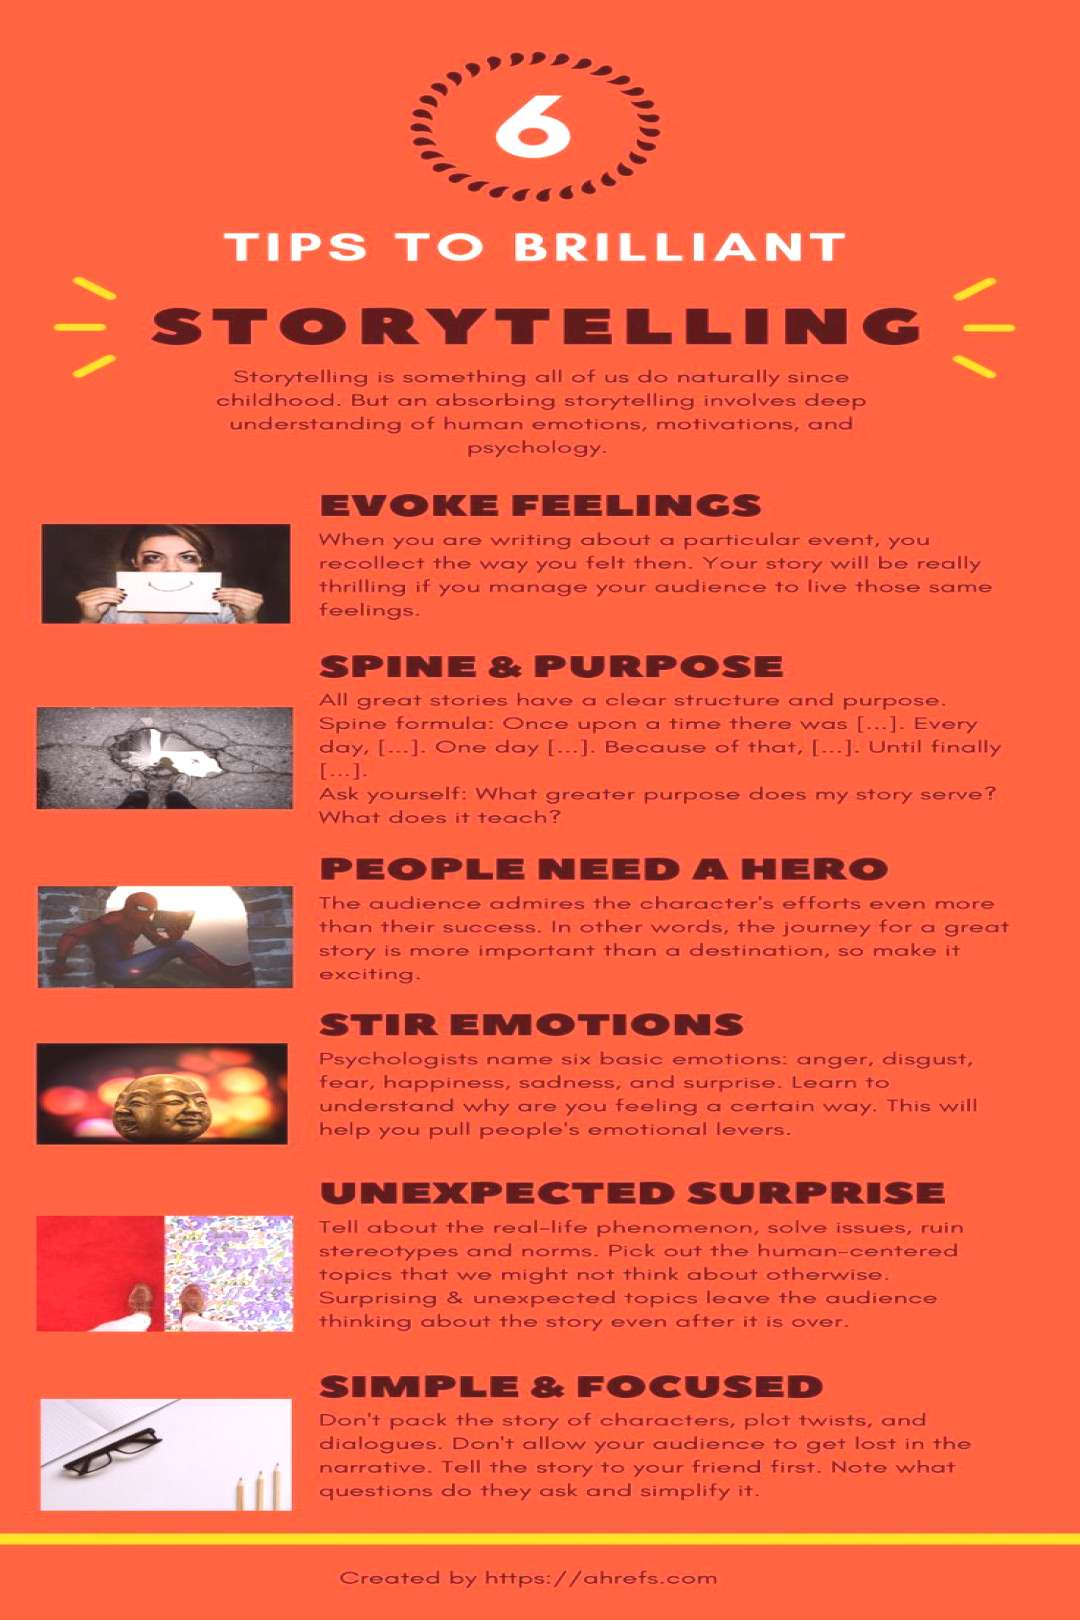 The Ultimate Storytelling Guide [Infographic]